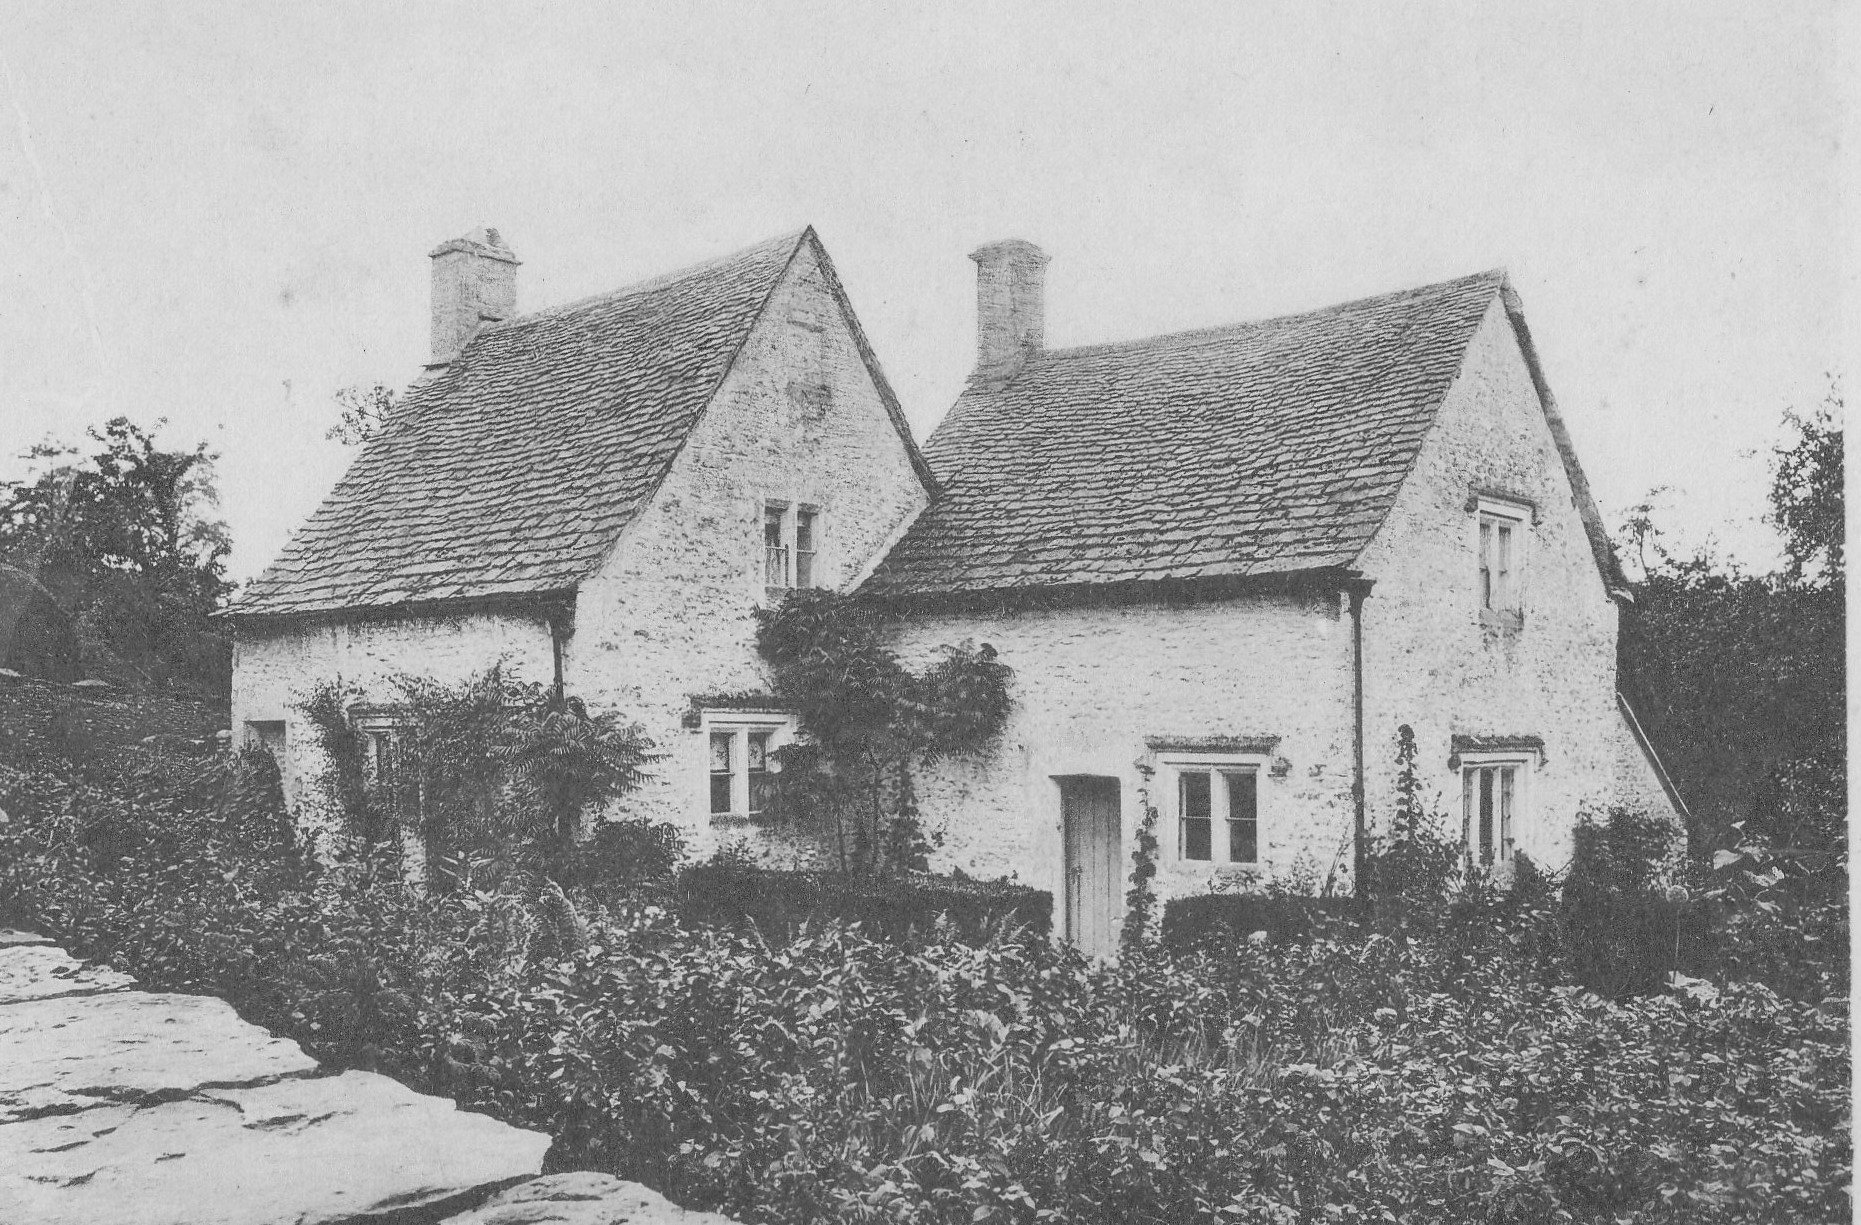 Lower Chedworth. This photograph is of Rose Cottage circa 1900 which was located in Lower Chedworth opposite York House. In 1929 it was purchased for £500 and moved to the Henry Ford museum in Michigan where it is today. Mike Tovey.